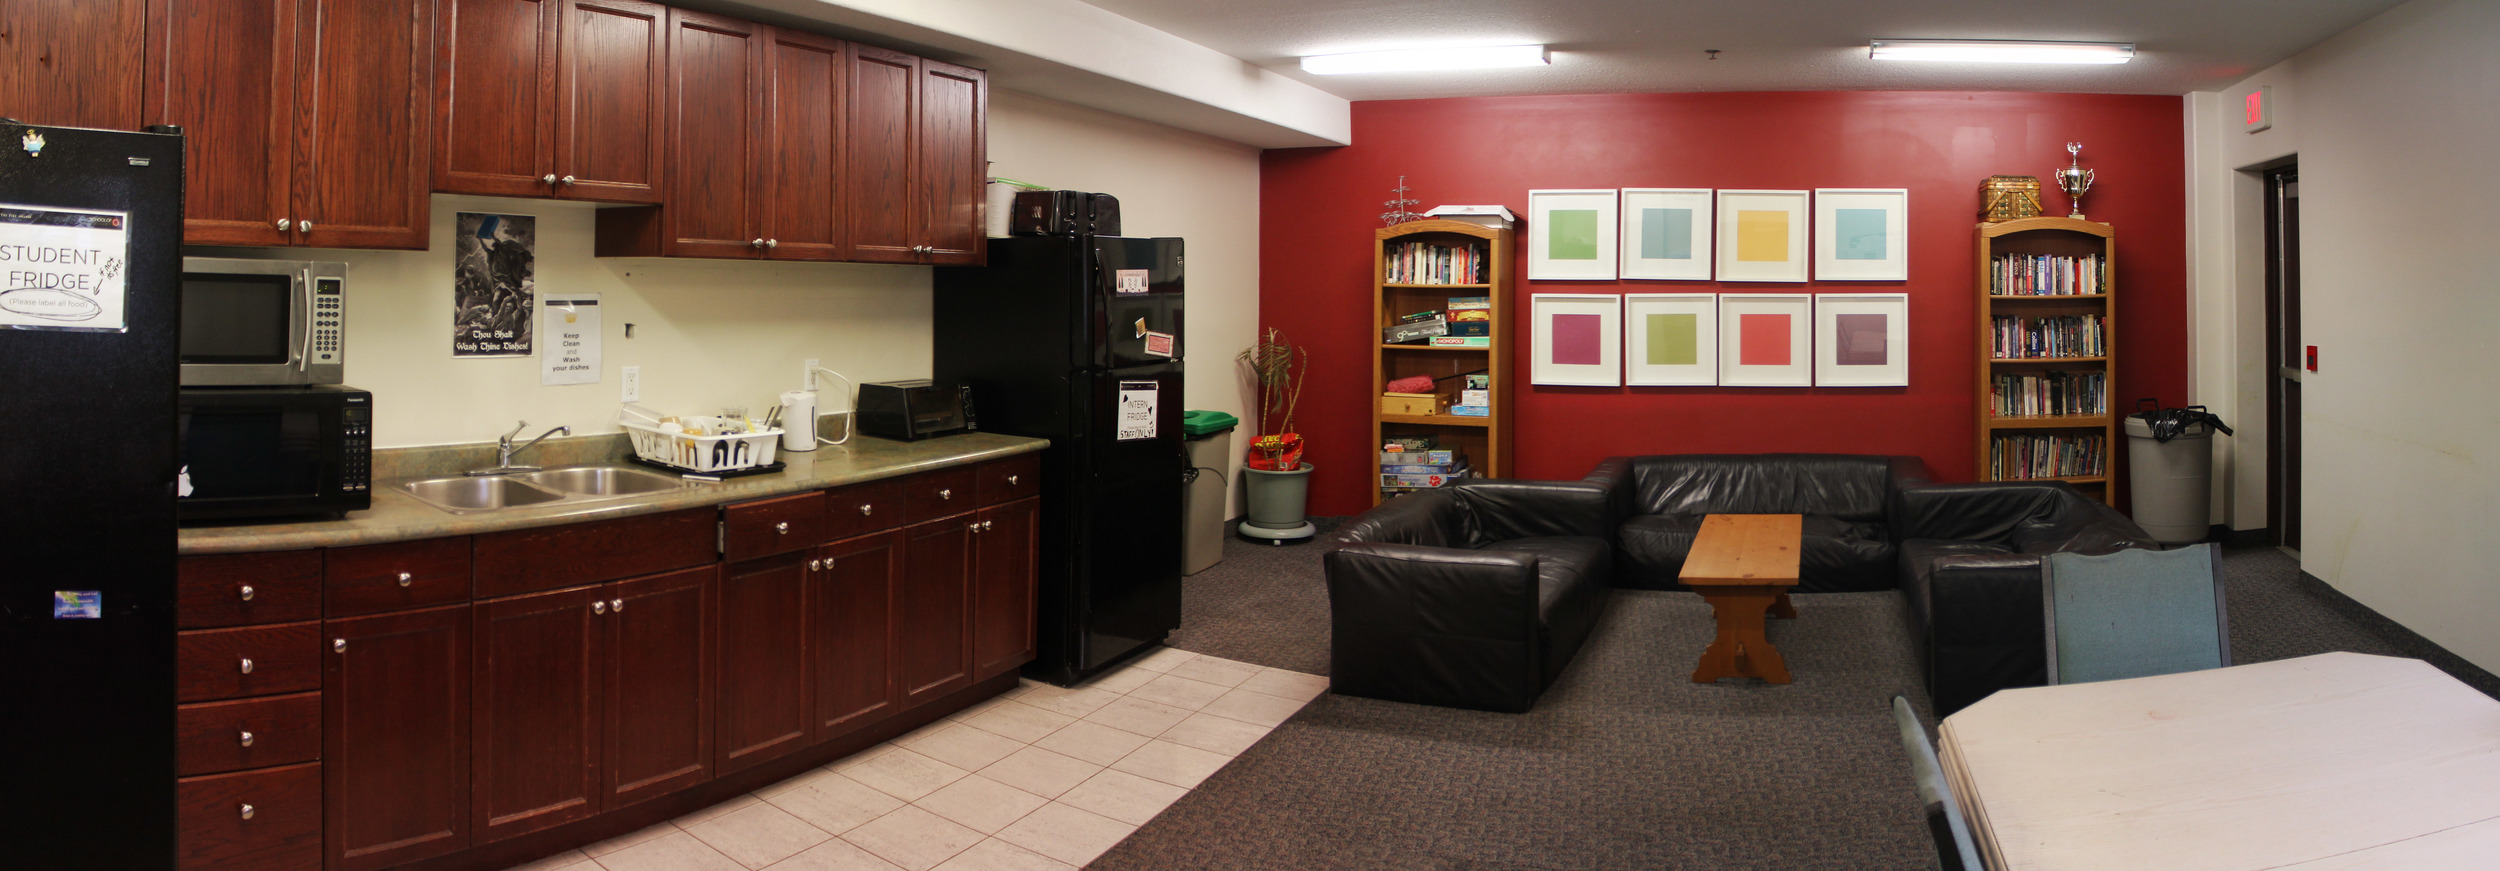 The School of Ministry Kitchenette is a social hub in the evenings. There is a fridge and freezer, cupboard space, toaster and kettle for snacks.